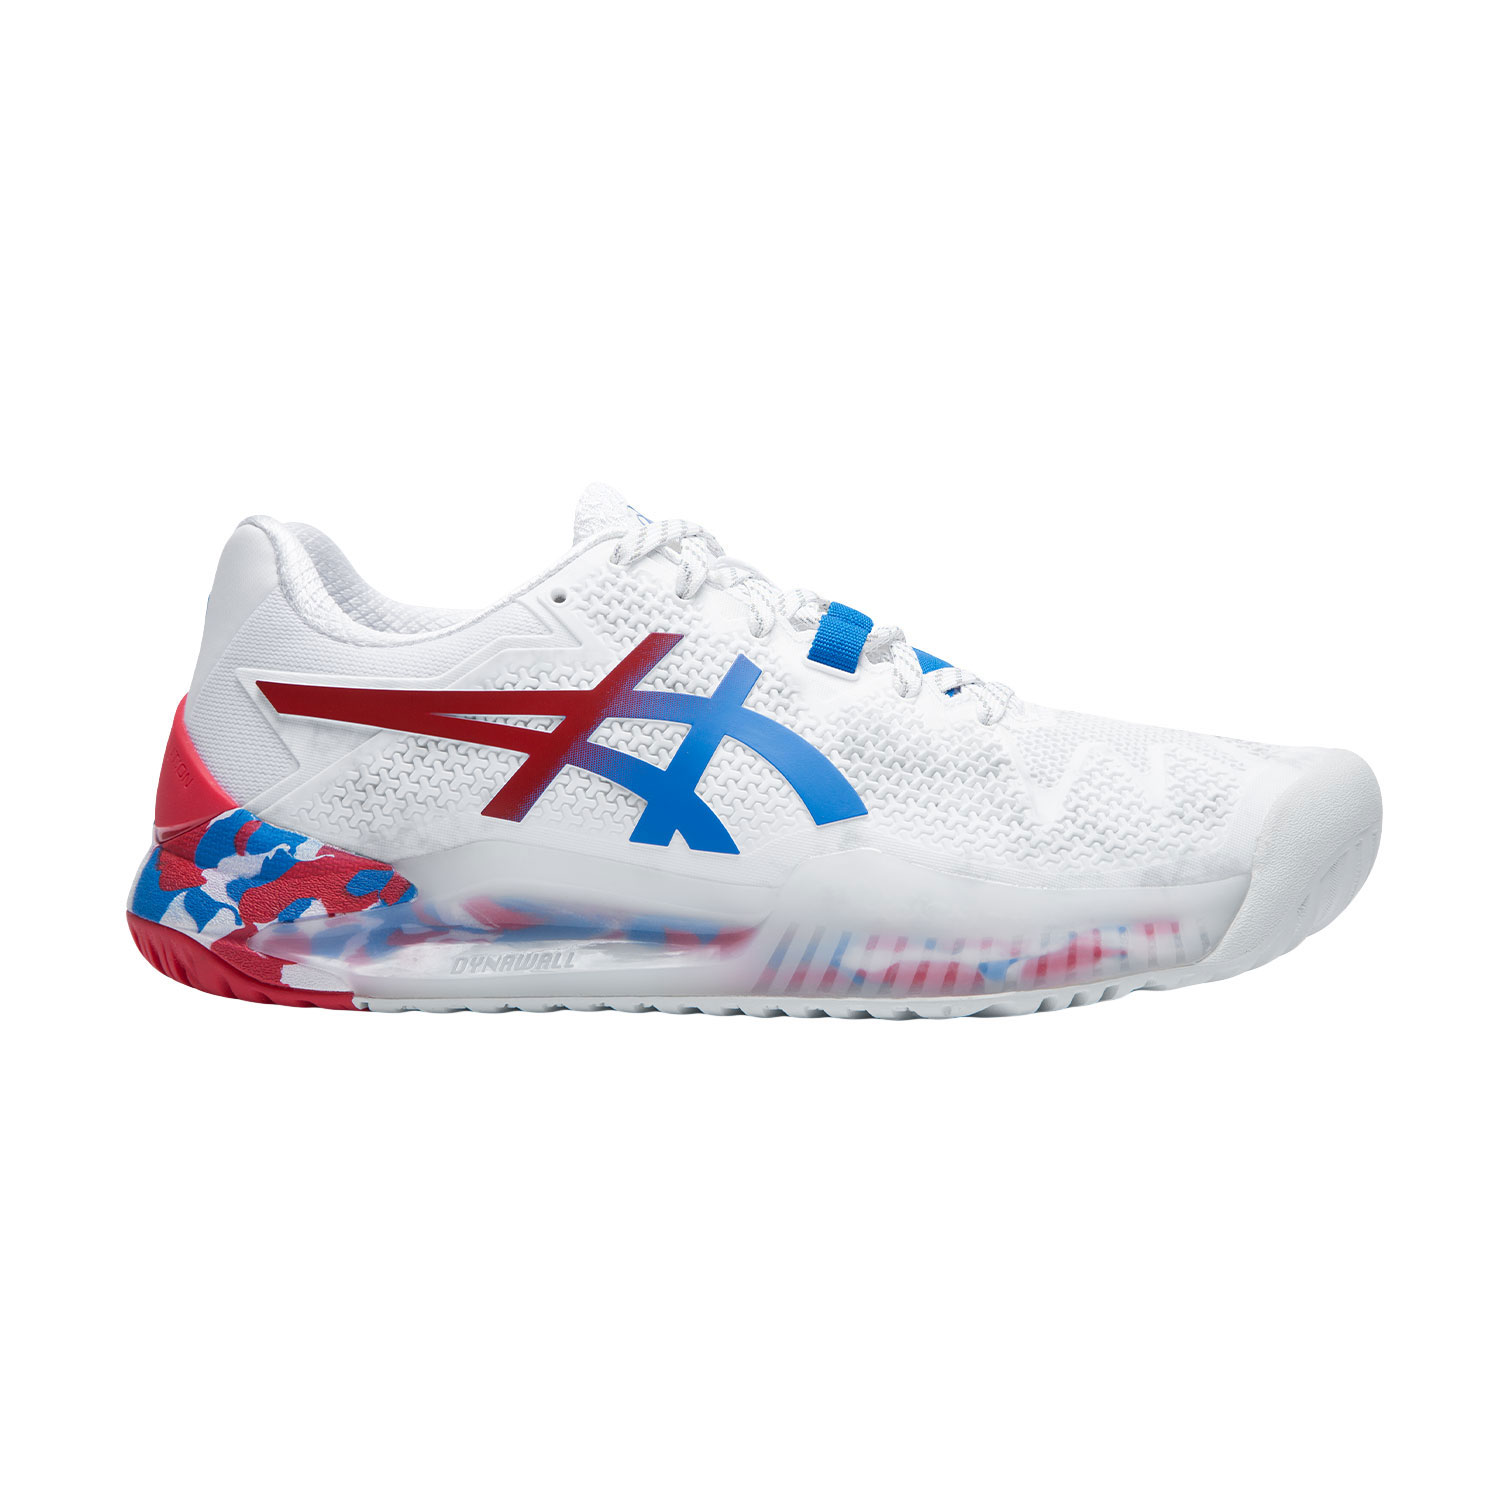 Asics Gel Resolution 8 Retro Tokyo L.E. - White/Electric Blue